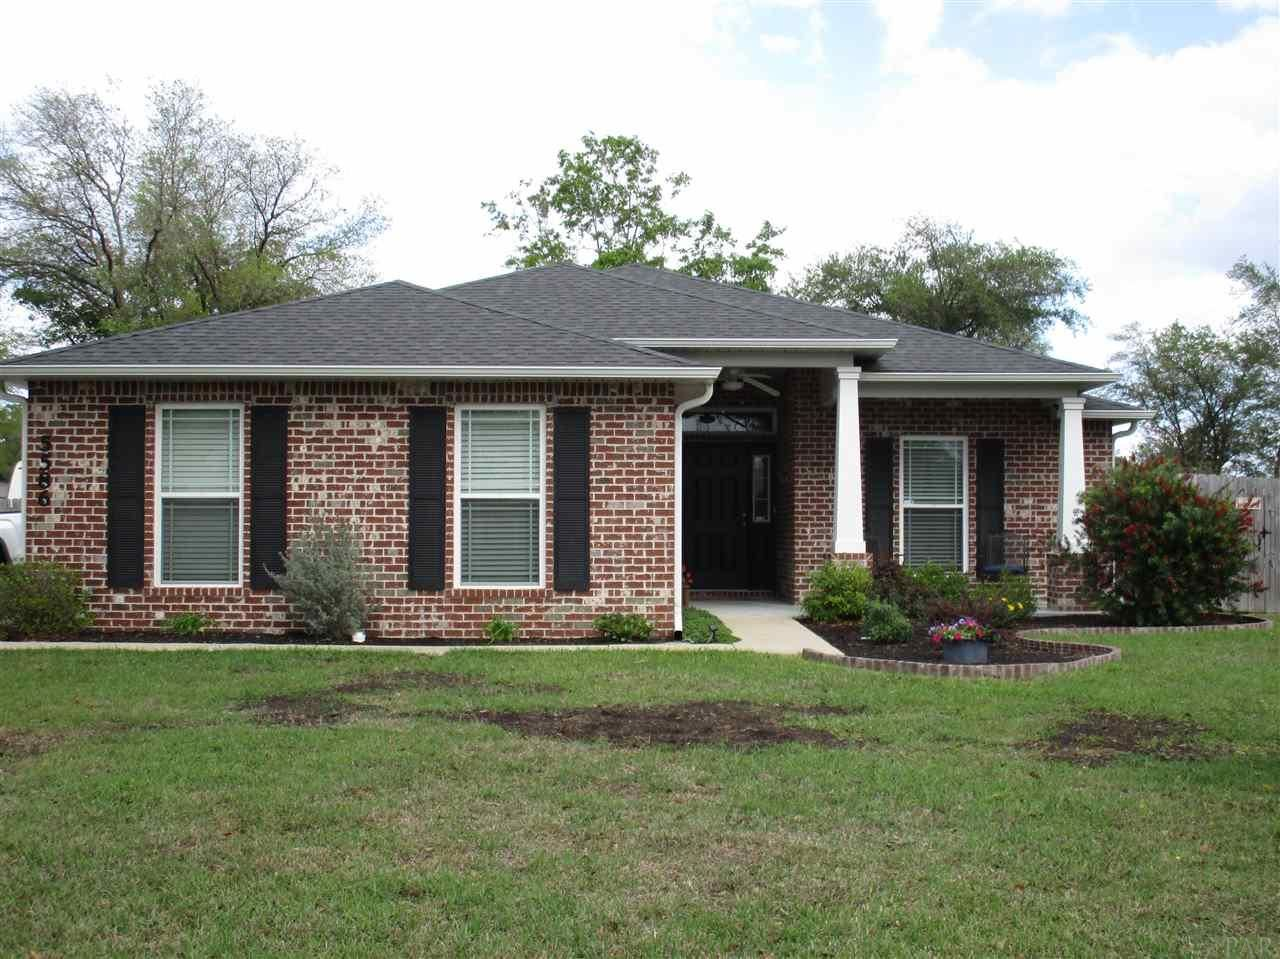 Property Image Of 5586 Cane Syrup Cir In Pace, Fl